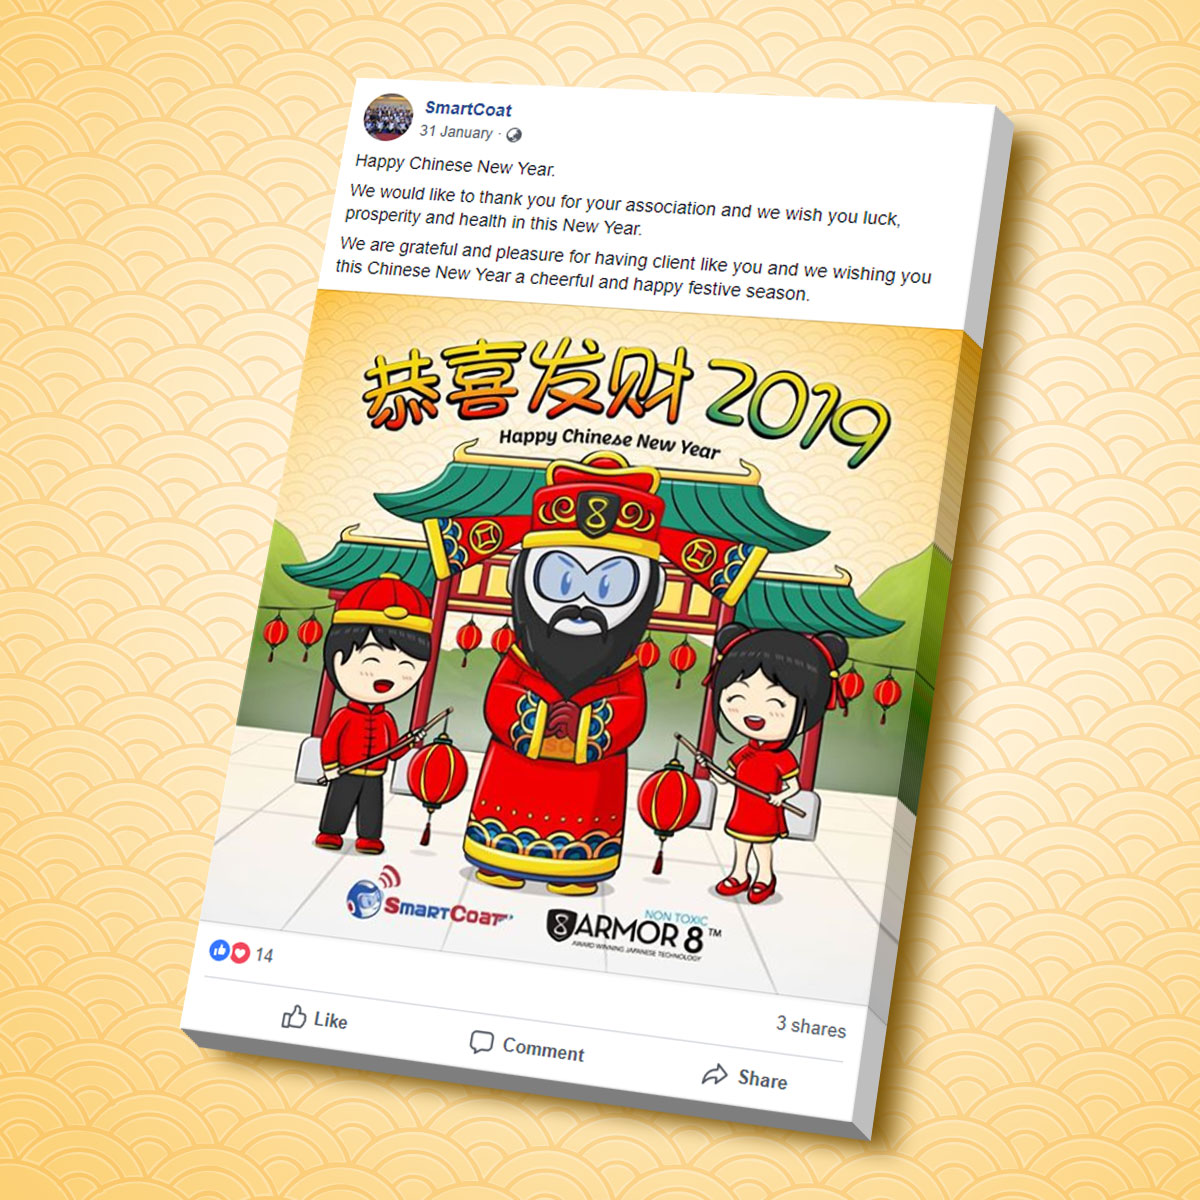 SmartCoat and Armor8 Happy Chinese New Year 2019 Facebook Post Design 03